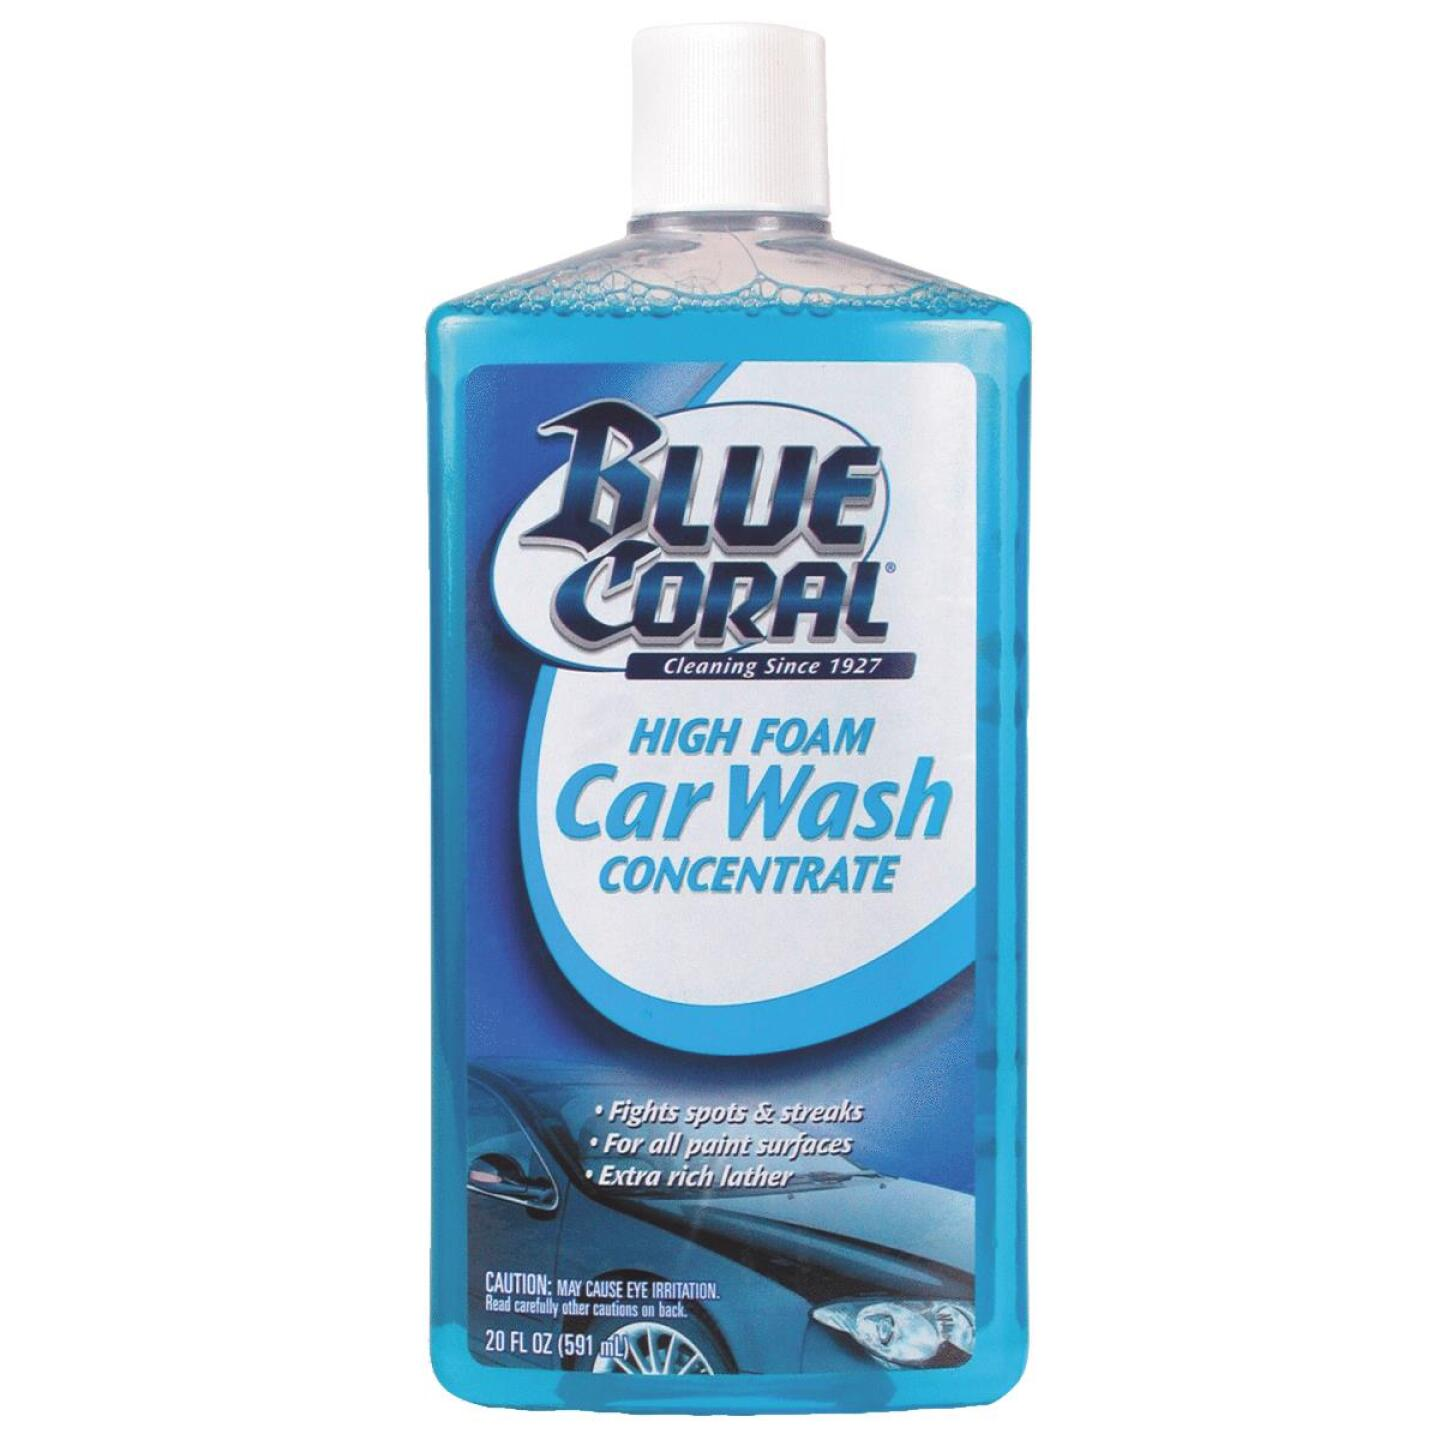 Blue Coral 20 Oz. Liquid High Foam Concentrate Car Wash Image 1